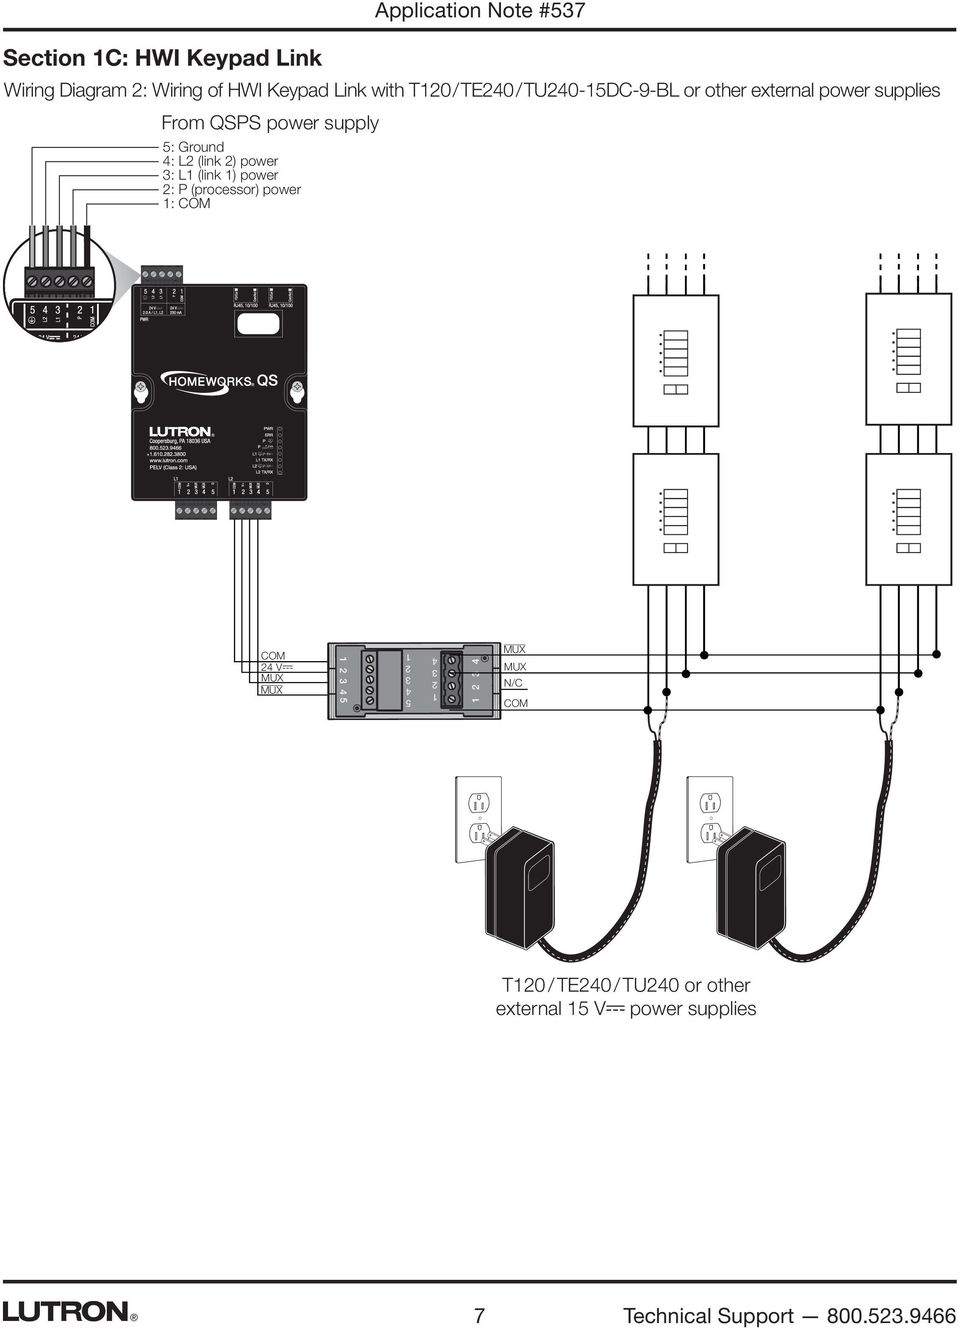 lutron homeworks wiring cable